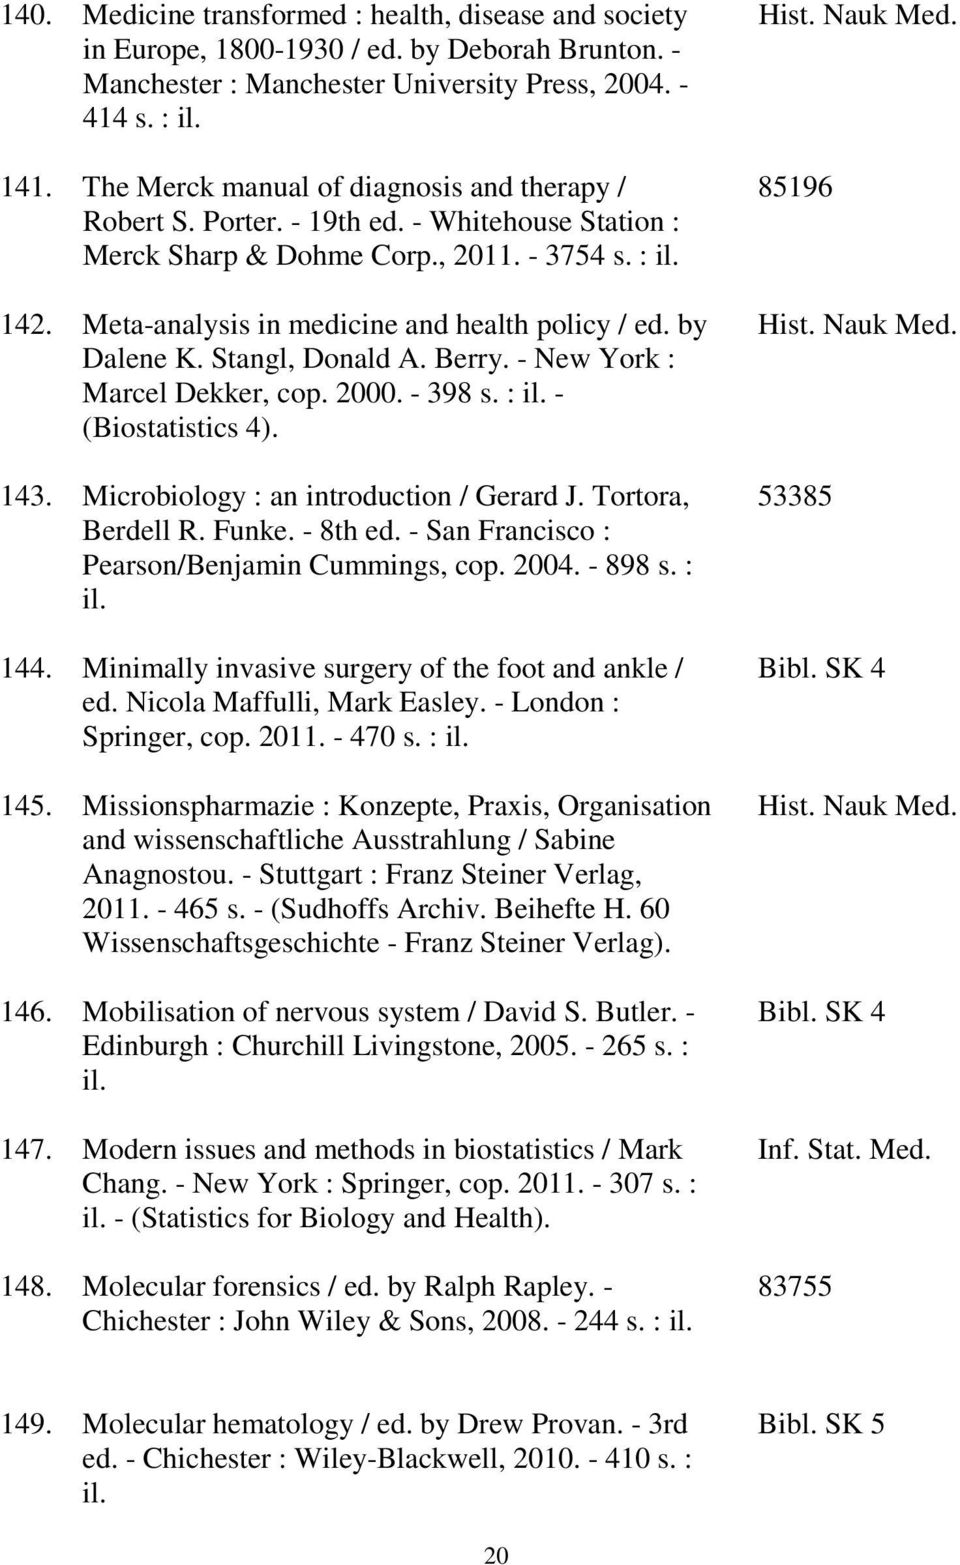 by Dalene K. Stangl, Donald A. Berry. - New York : Marcel Dekker, cop. 2000. - 398 s. : il. - (Biostatistics 4). 143. Microbiology : an introduction / Gerard J. Tortora, Berdell R. Funke. - 8th ed.